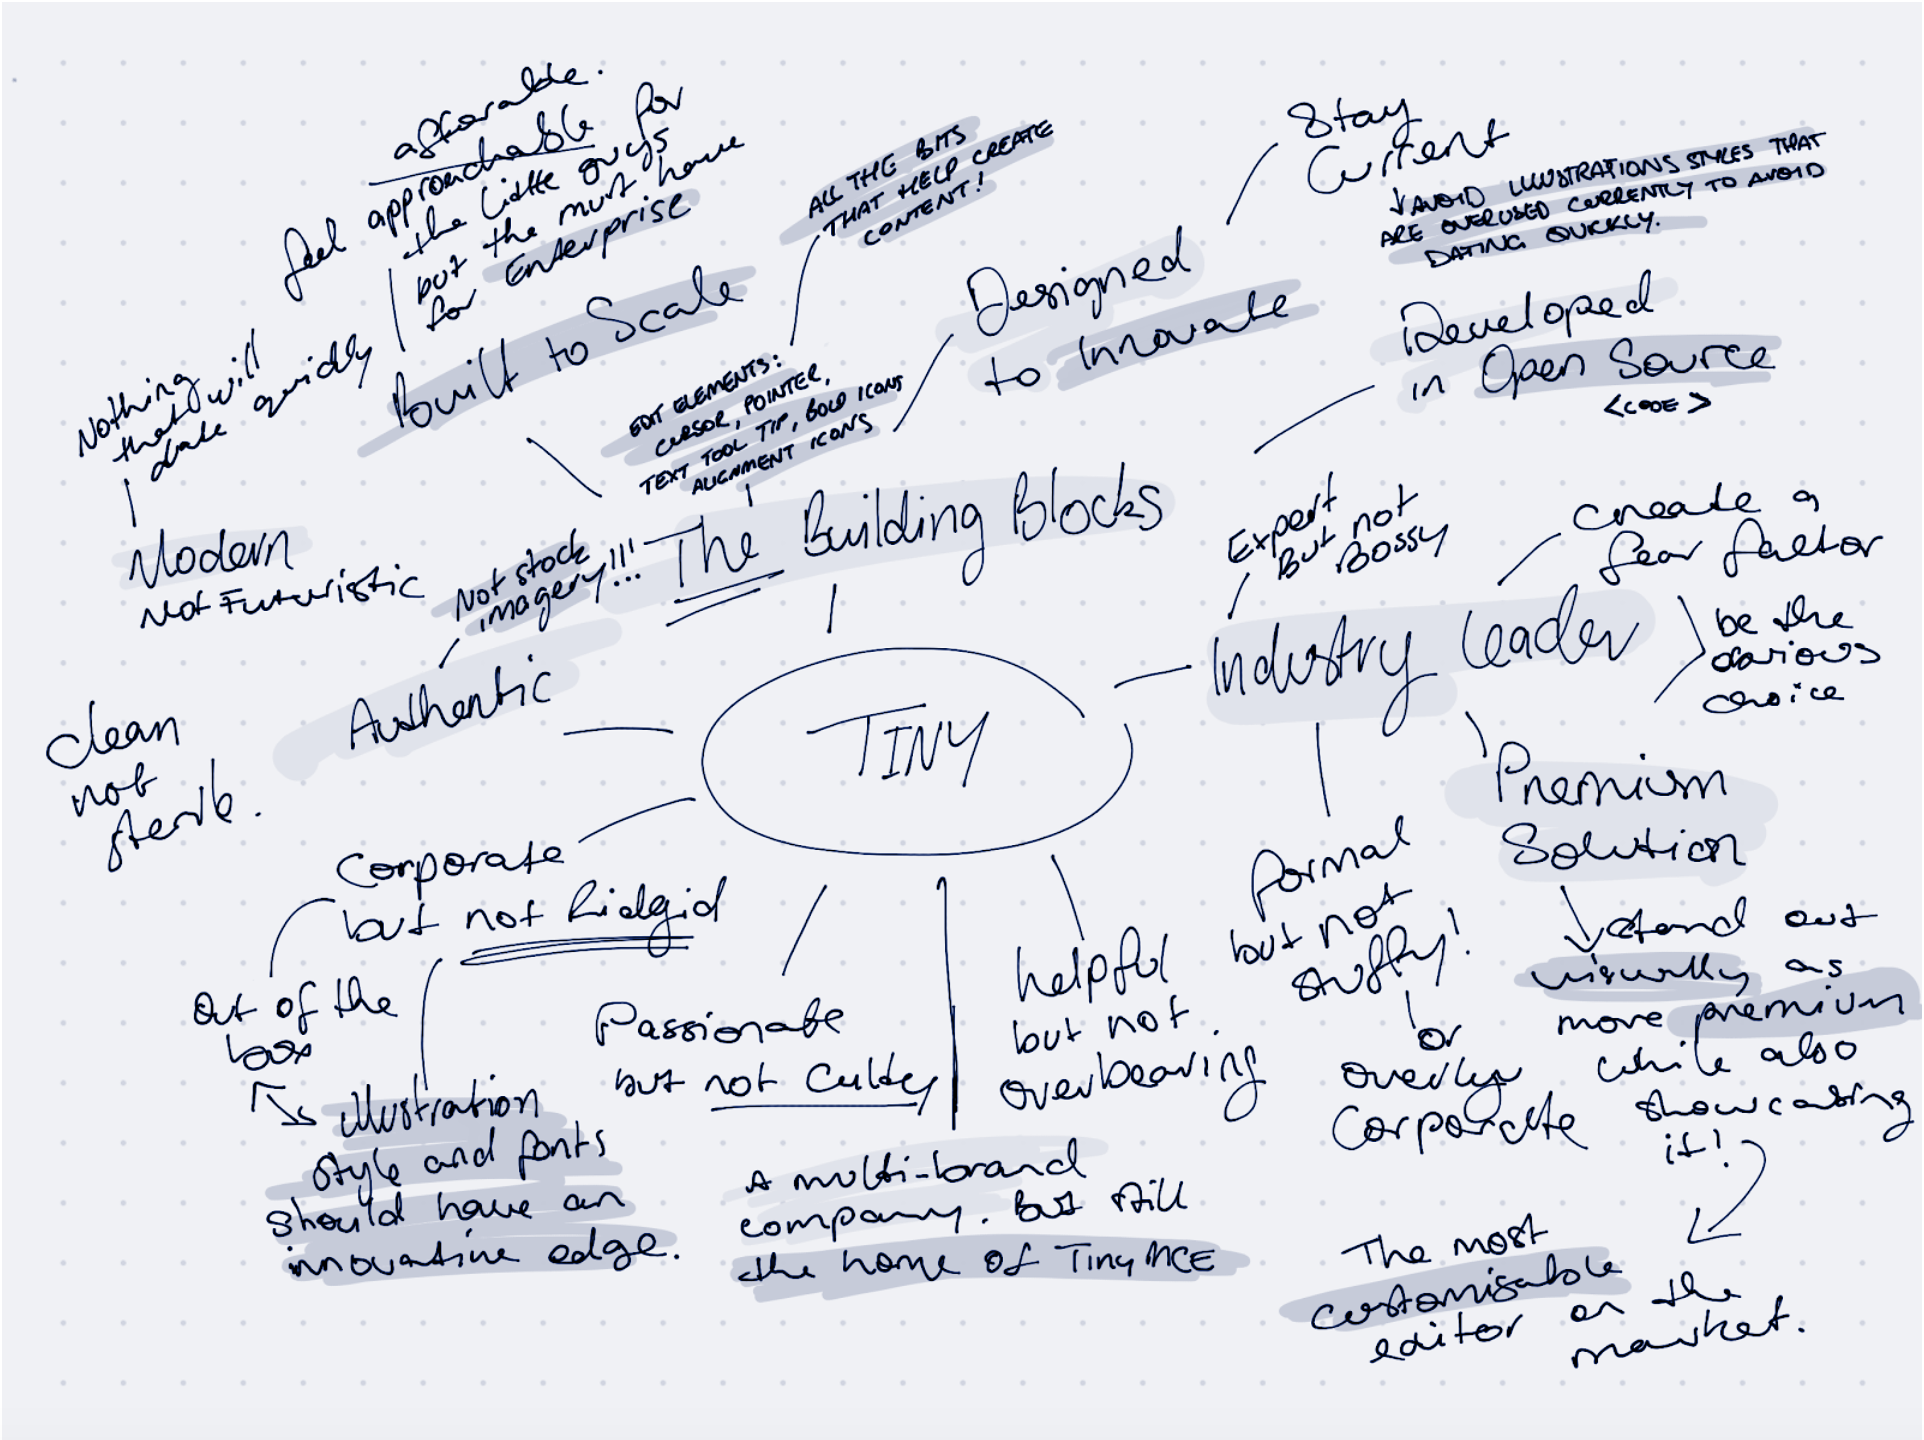 Hand drawn mindmap exploring different ideas and concepts relating to the Tiny brand.